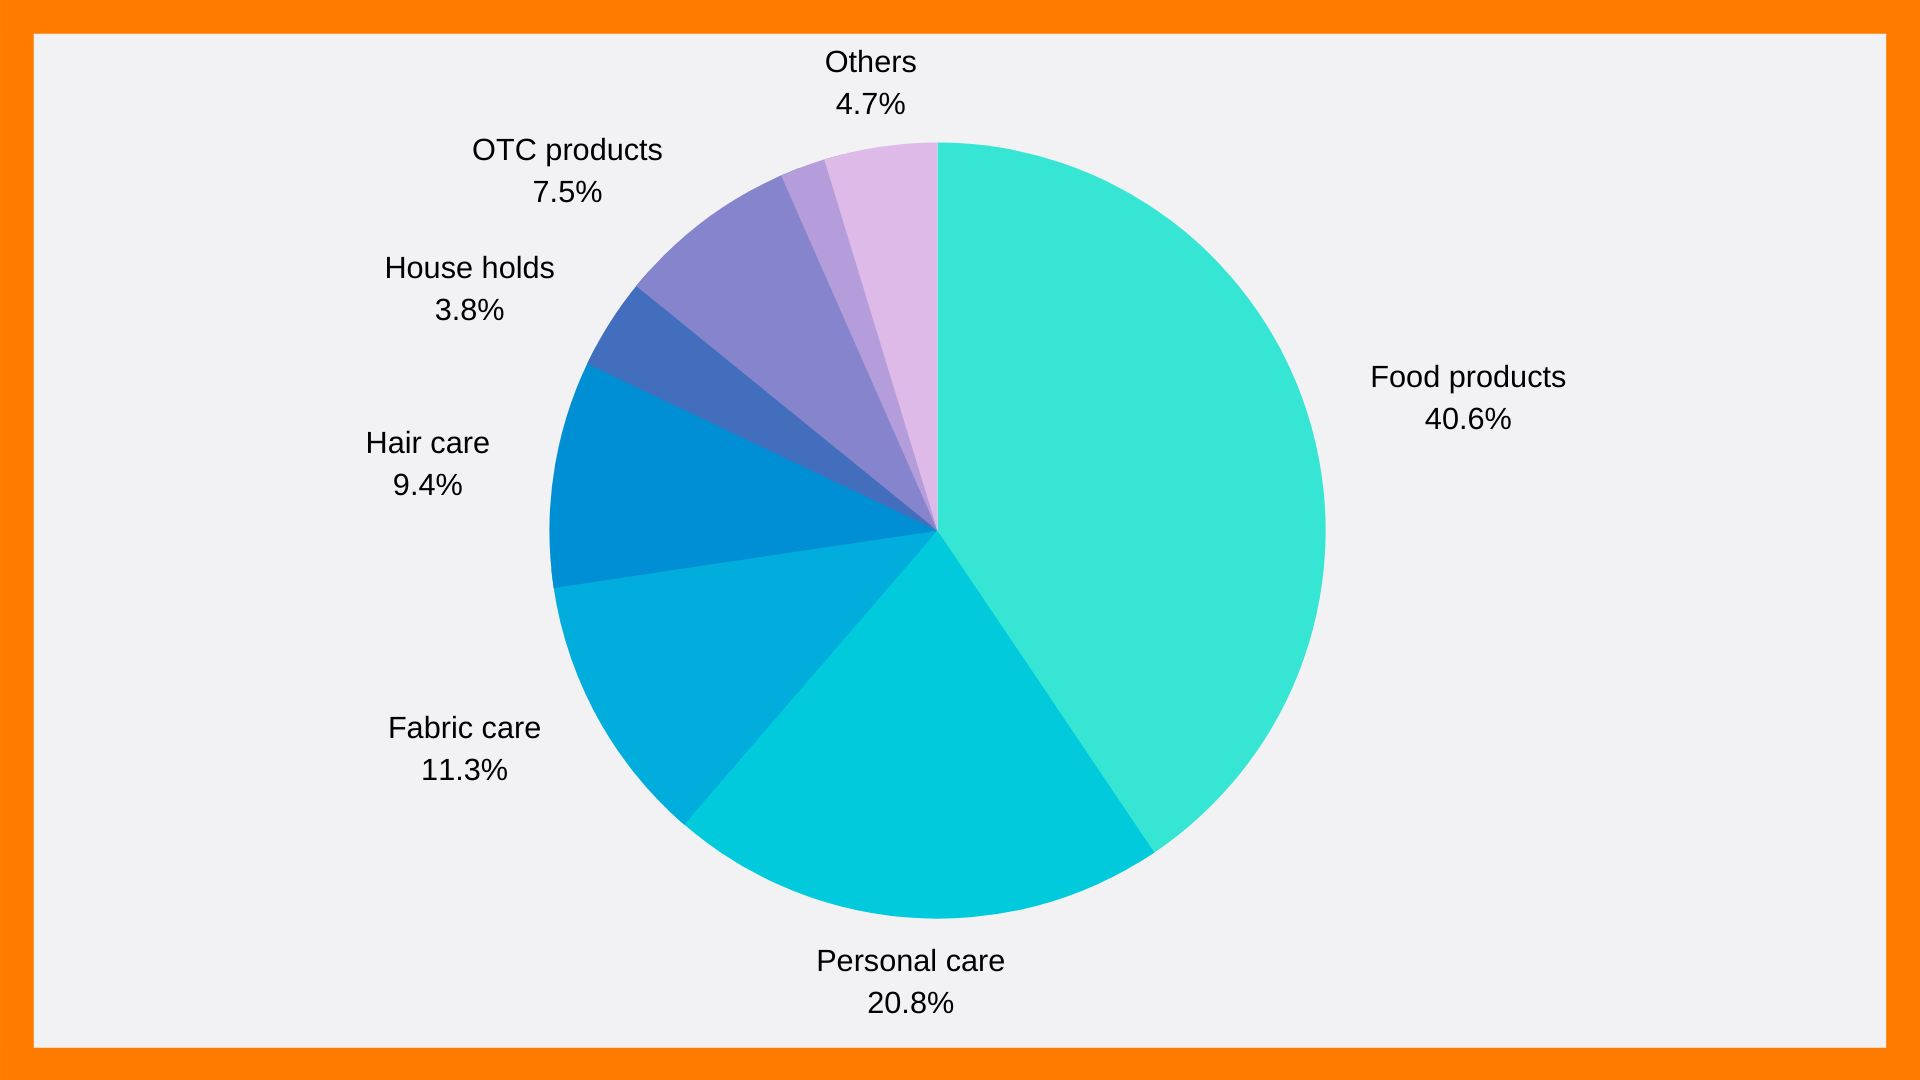 chart showing consumption of different FMCG products